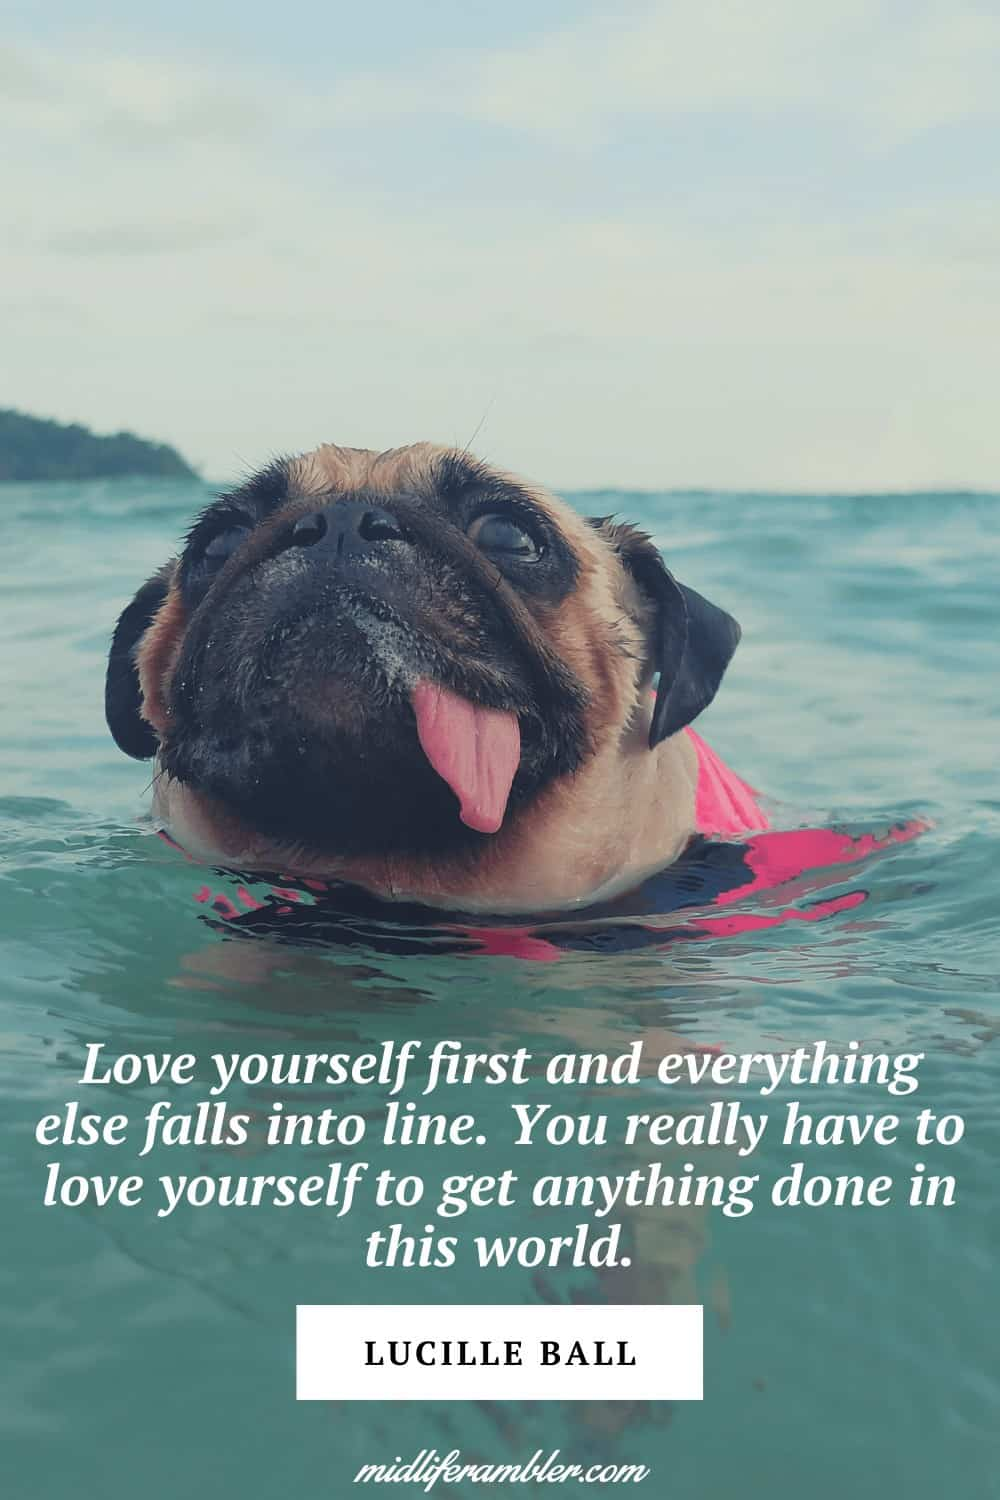 50 Self-Compassion Quotes and Affirmations to Help You Learn to Love and Accept Yourself - Love yourself first and everything else falls into line. You really have to love yourself to get anything done in this world. – Lucille Ball